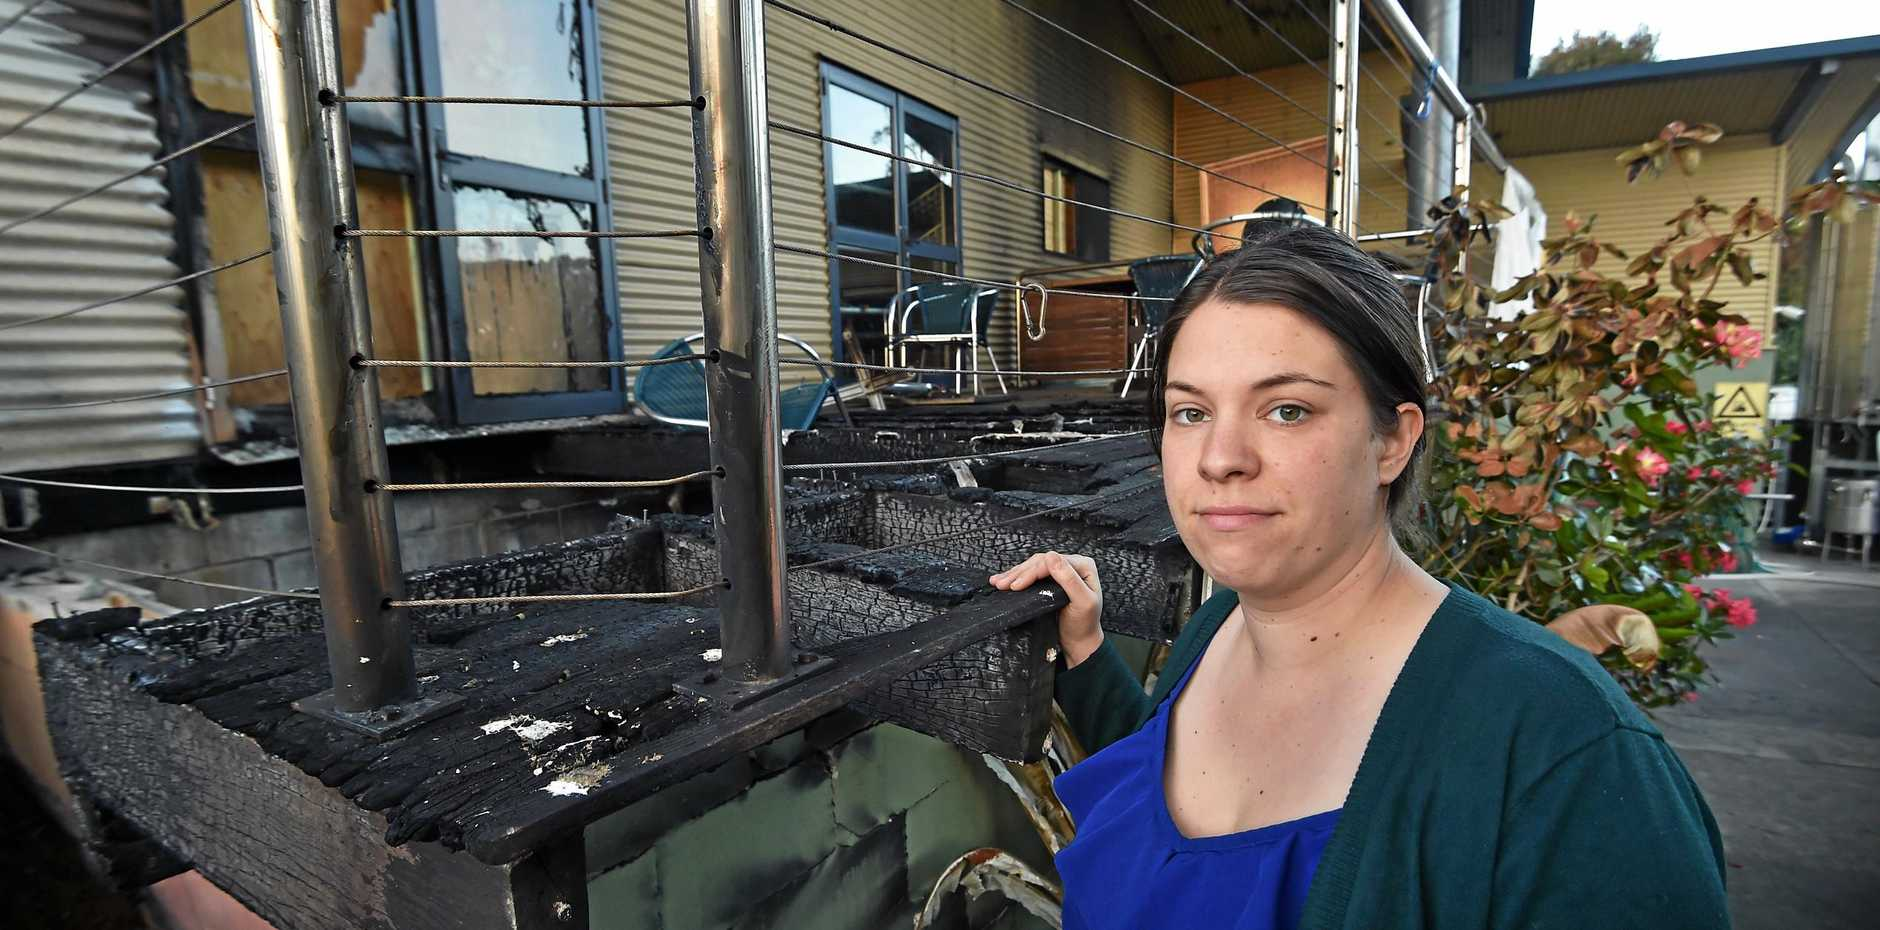 Manager Jennepher Bucher was devastated after the arson attack on the Maleny Cheese factory last Monday morning.